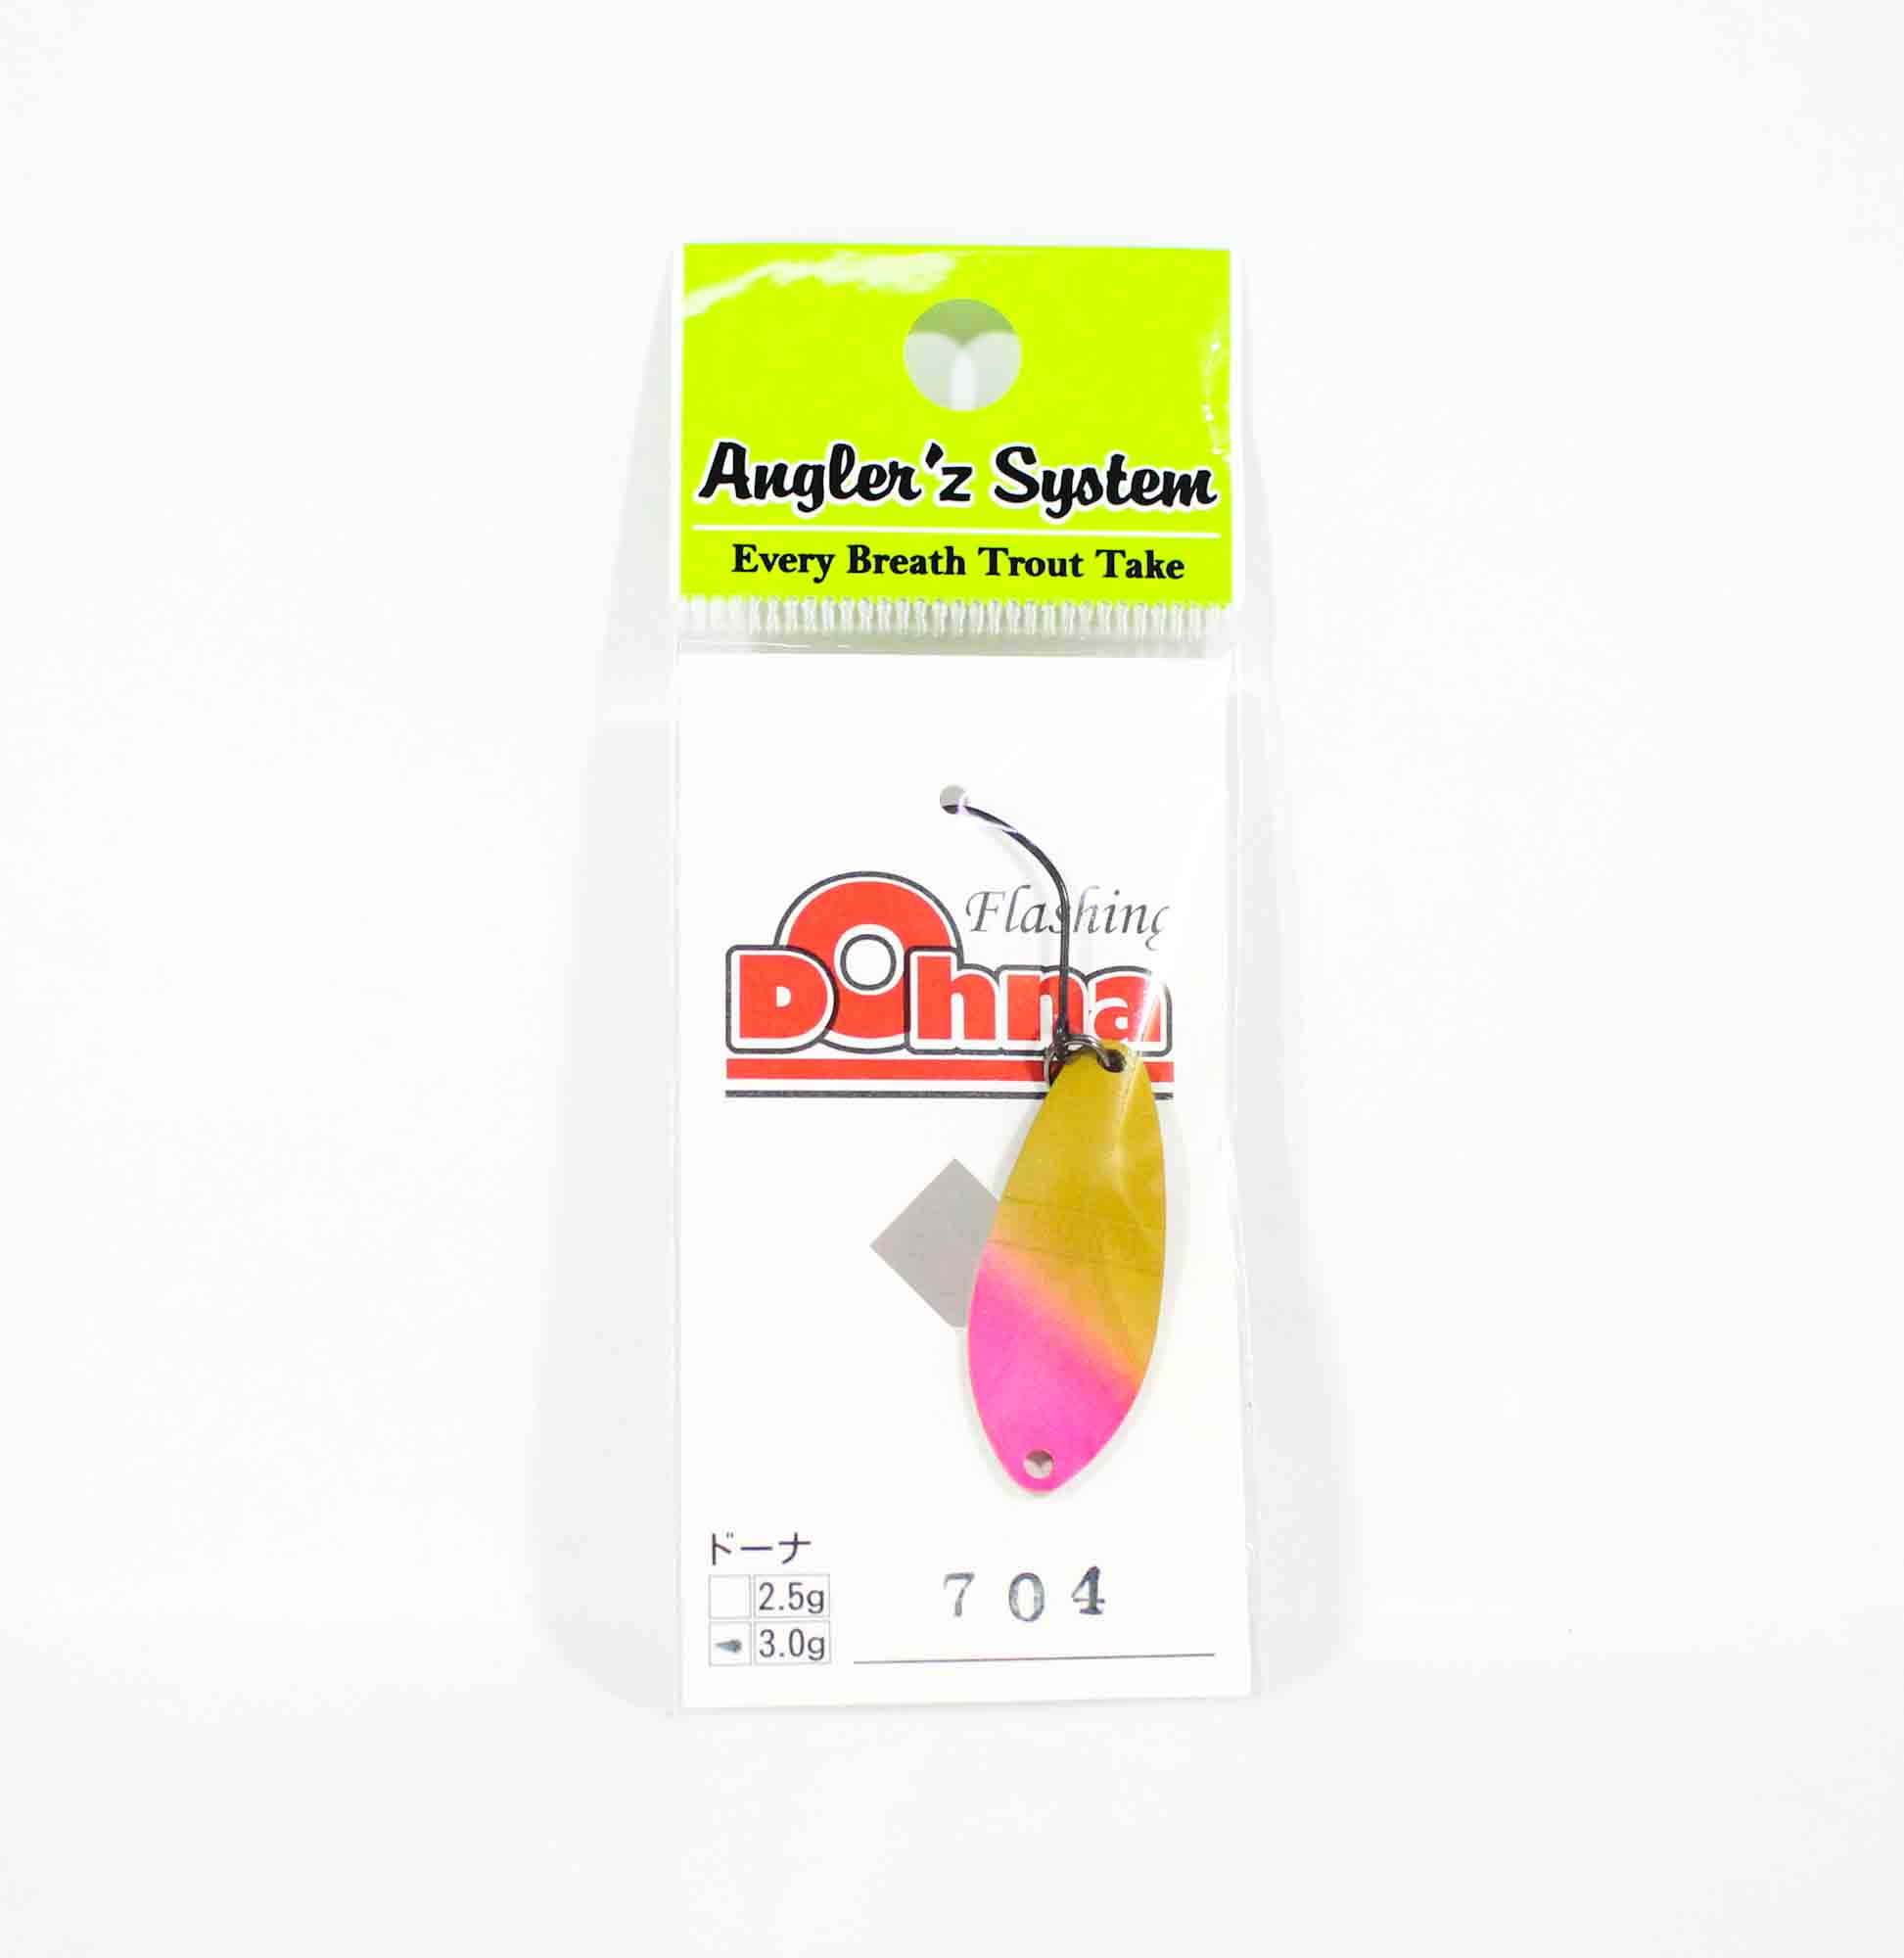 Anglers System Antem Dohna 3.0 grams Spoon Sinking Lure 704 (6337)